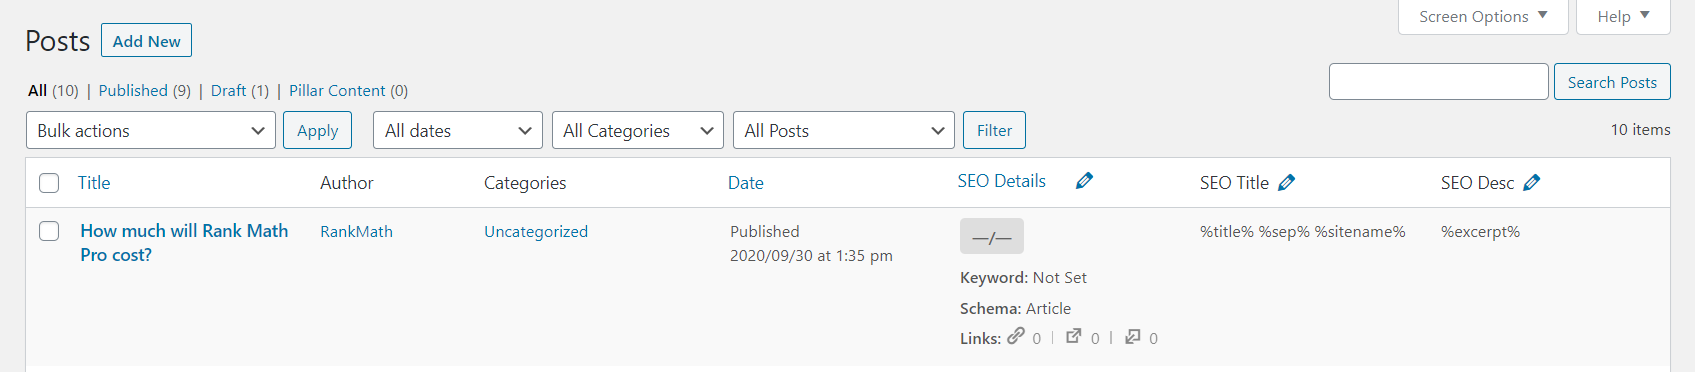 How Post Screen Appears After Enabling SEO Settings